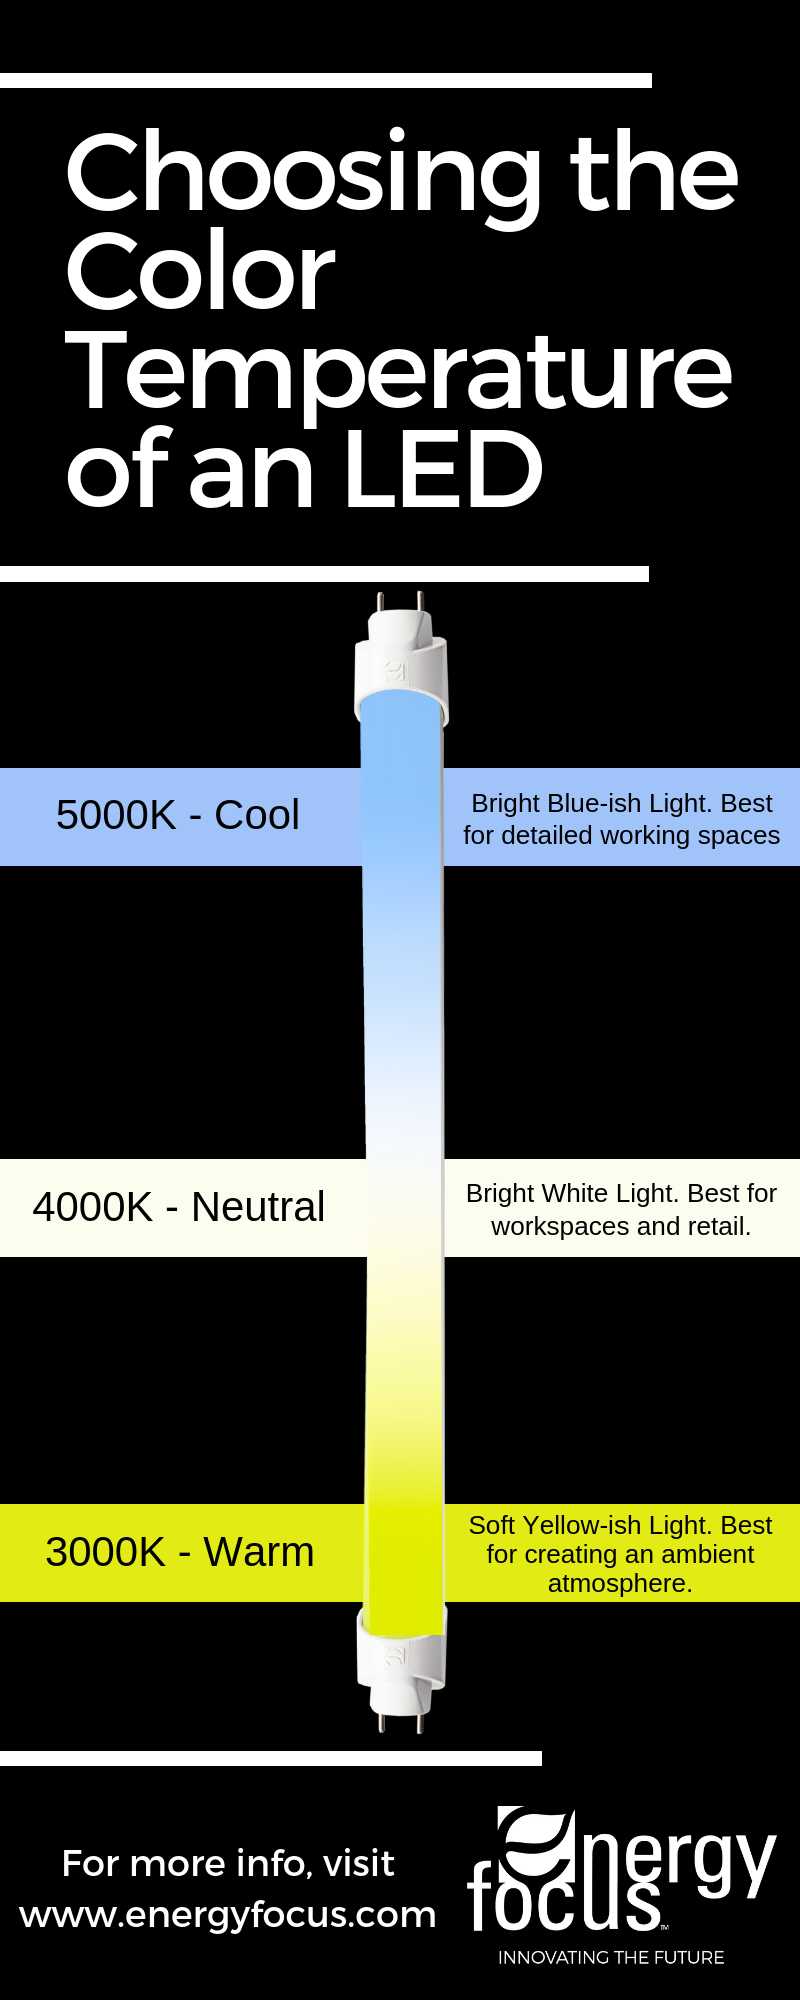 Choosing Color Temperature of LED Infographic